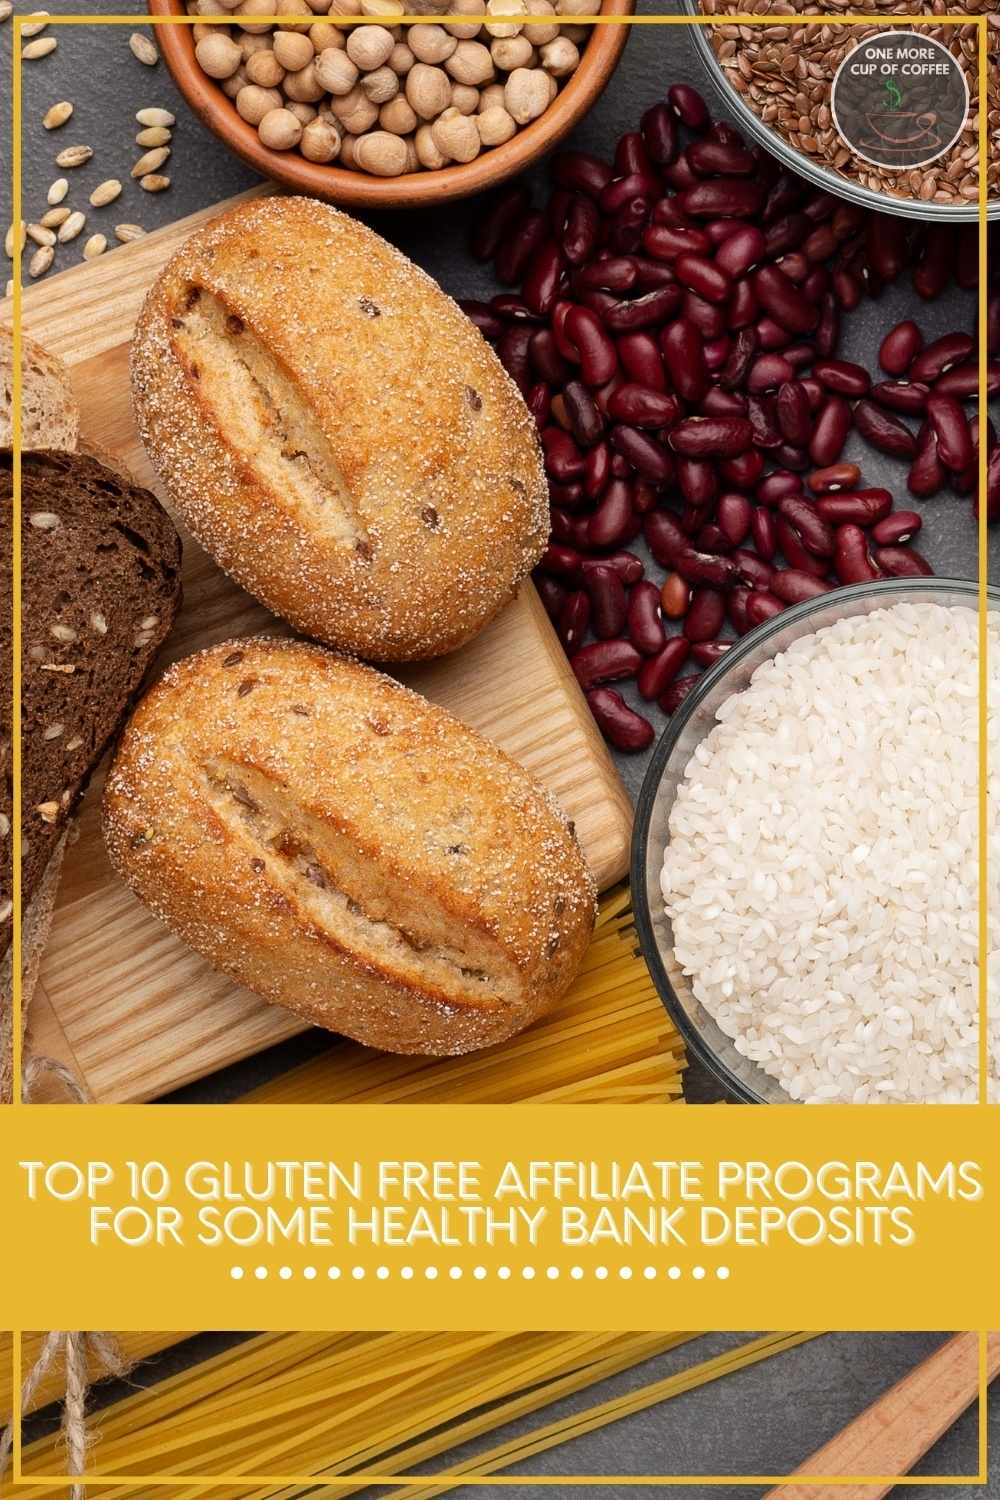 """closeup top view image of gluten-free food, with text overlay """"Top 10 Gluten Free Affiliate Programs For Some Healthy Bank Deposits"""""""